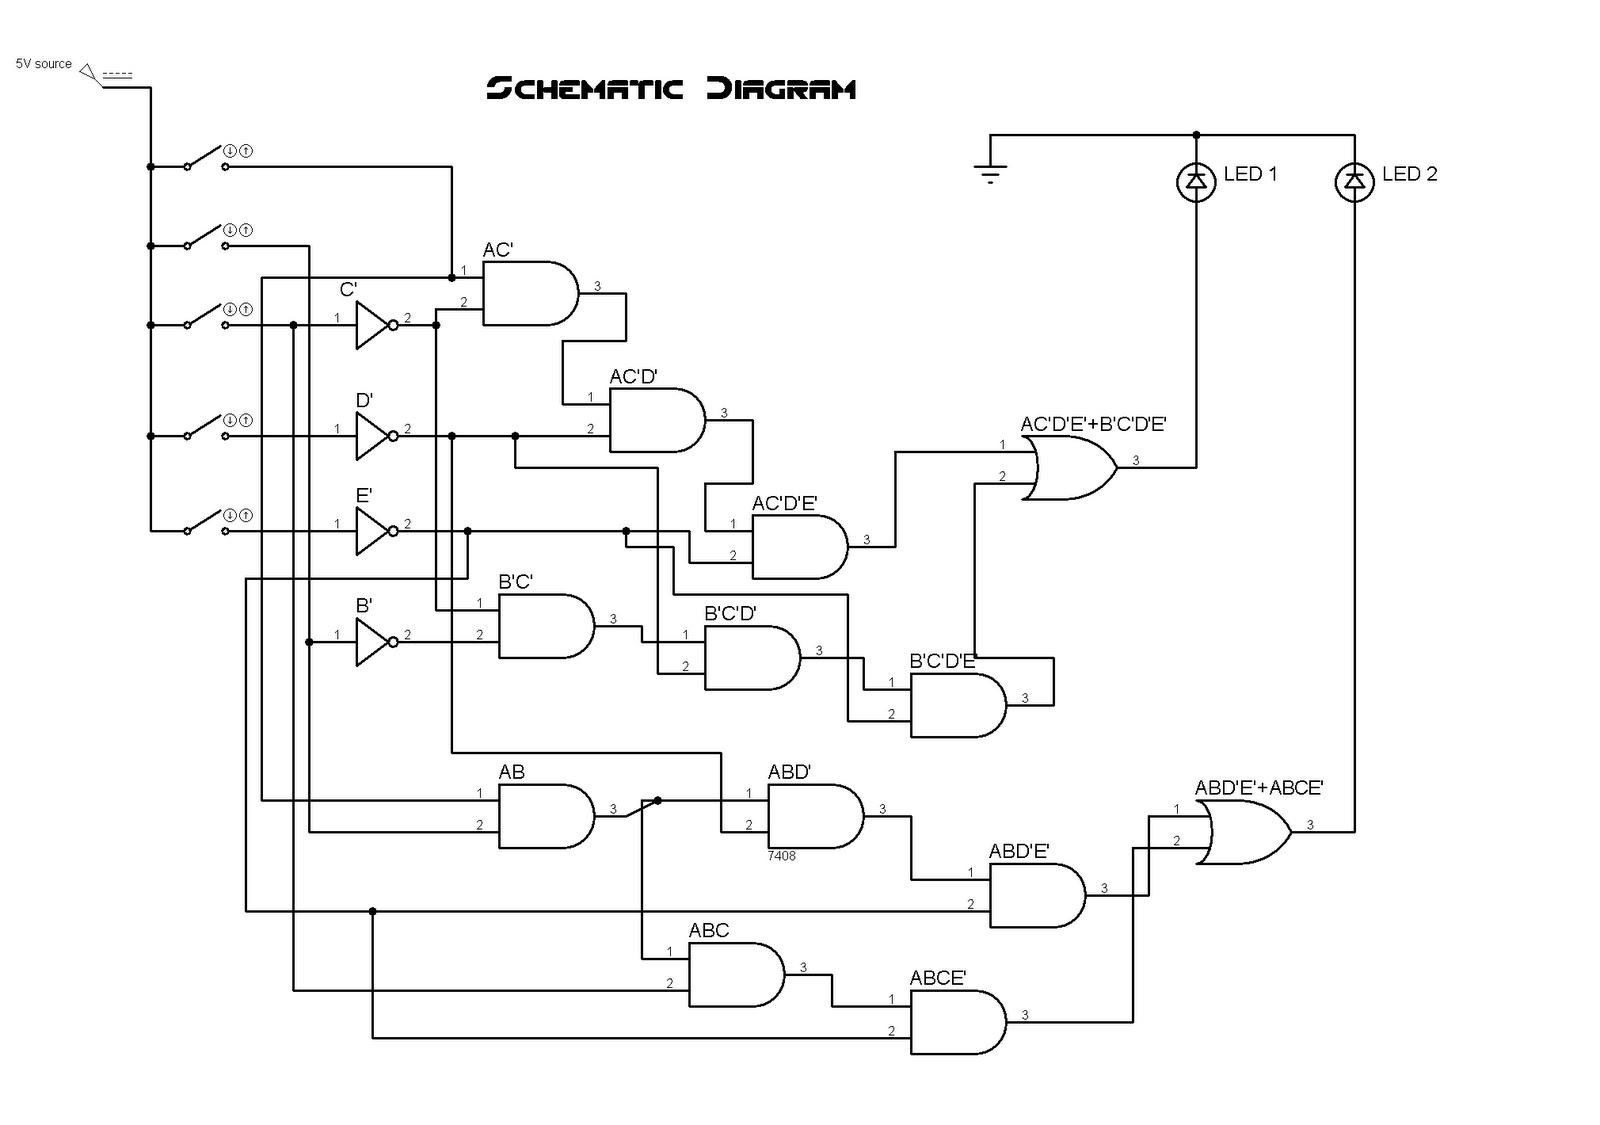 Results Page 20 About Servo Motor Searching Circuits At Image A Wiring Diagram Ladder Of Forward Reverse Our Schematic